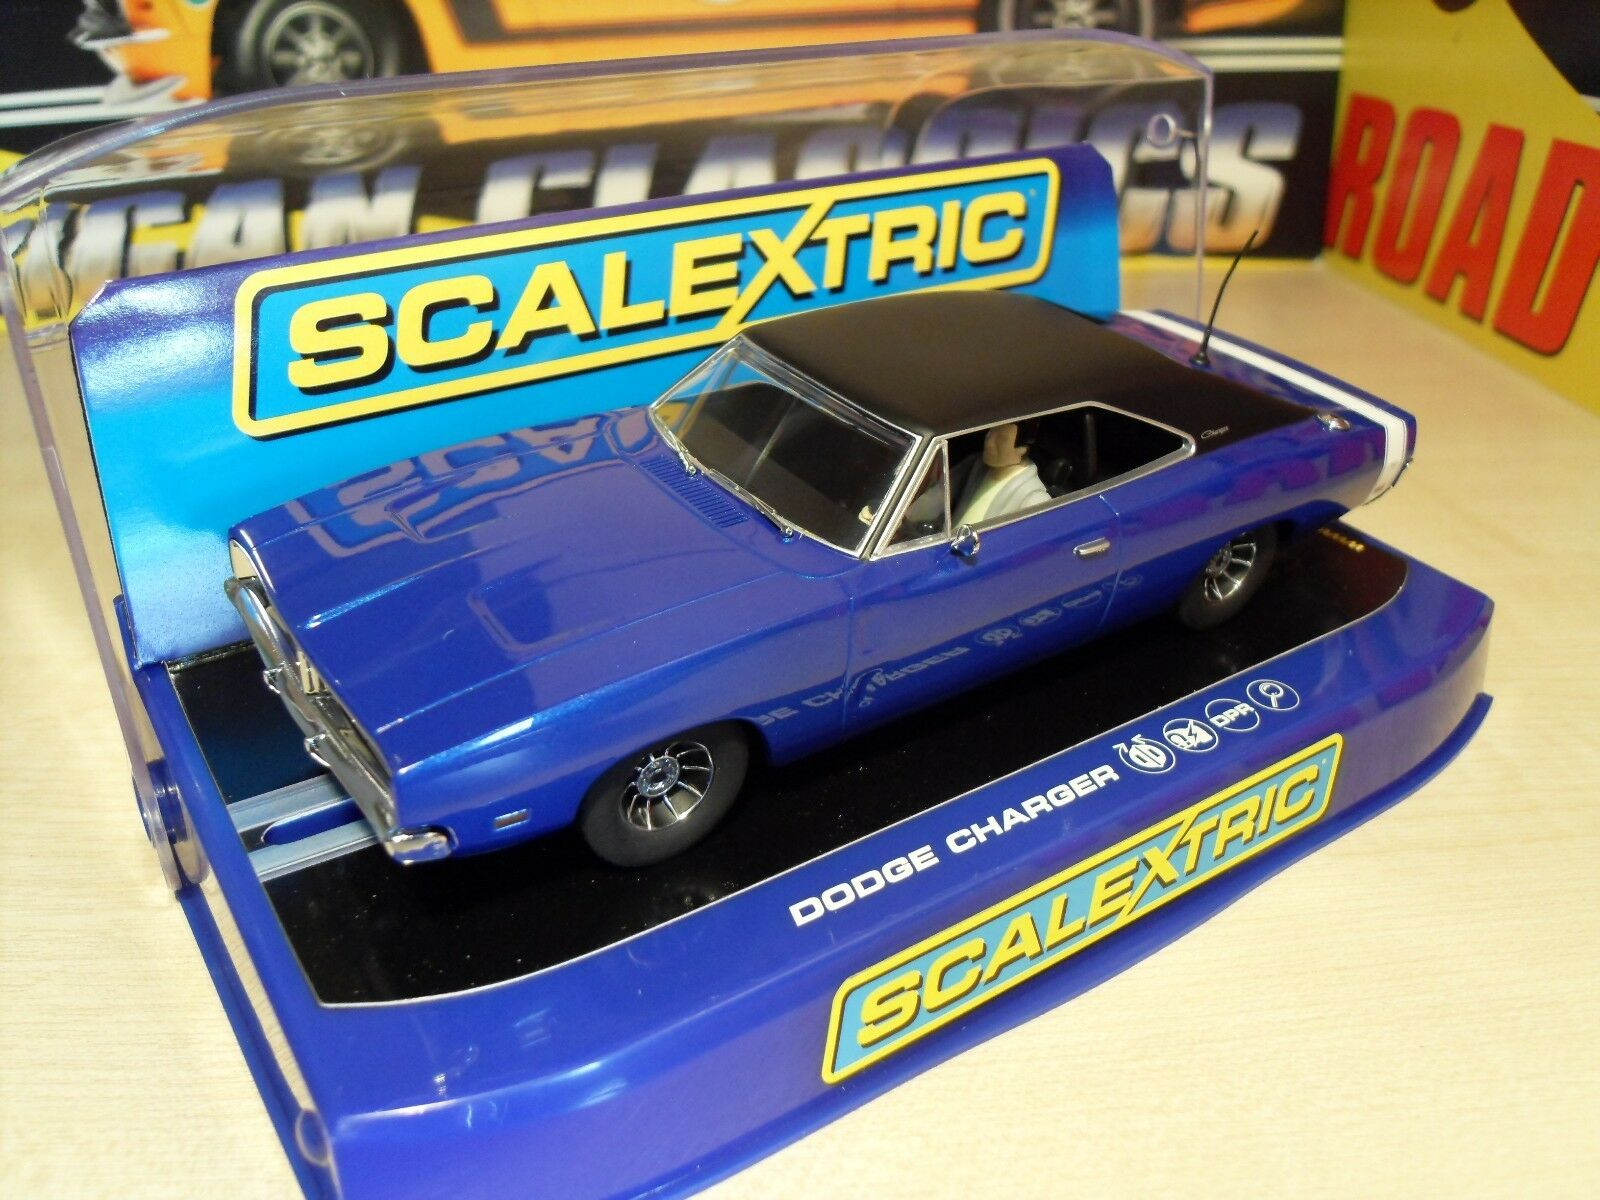 Scalextric C3535 Dodge Charger R T 'Metallic azul Street Car' - Brand New Boxed.